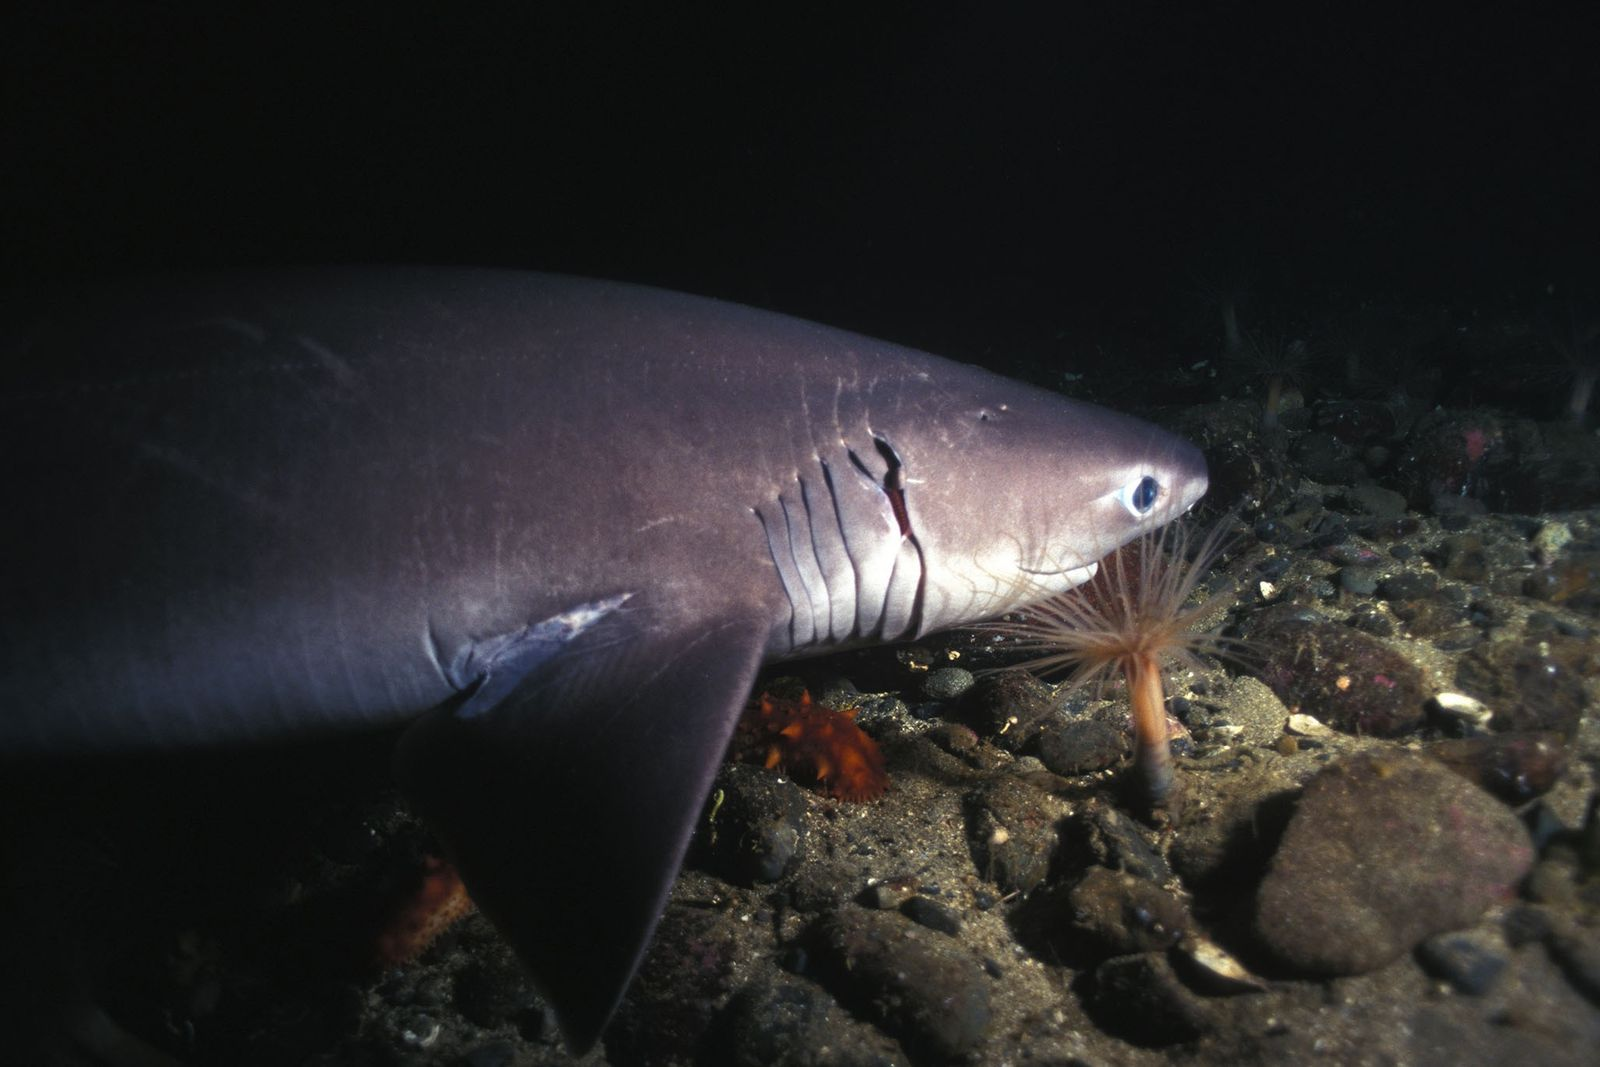 Scientists have split a previously identified species of sixgill shark into two different species.